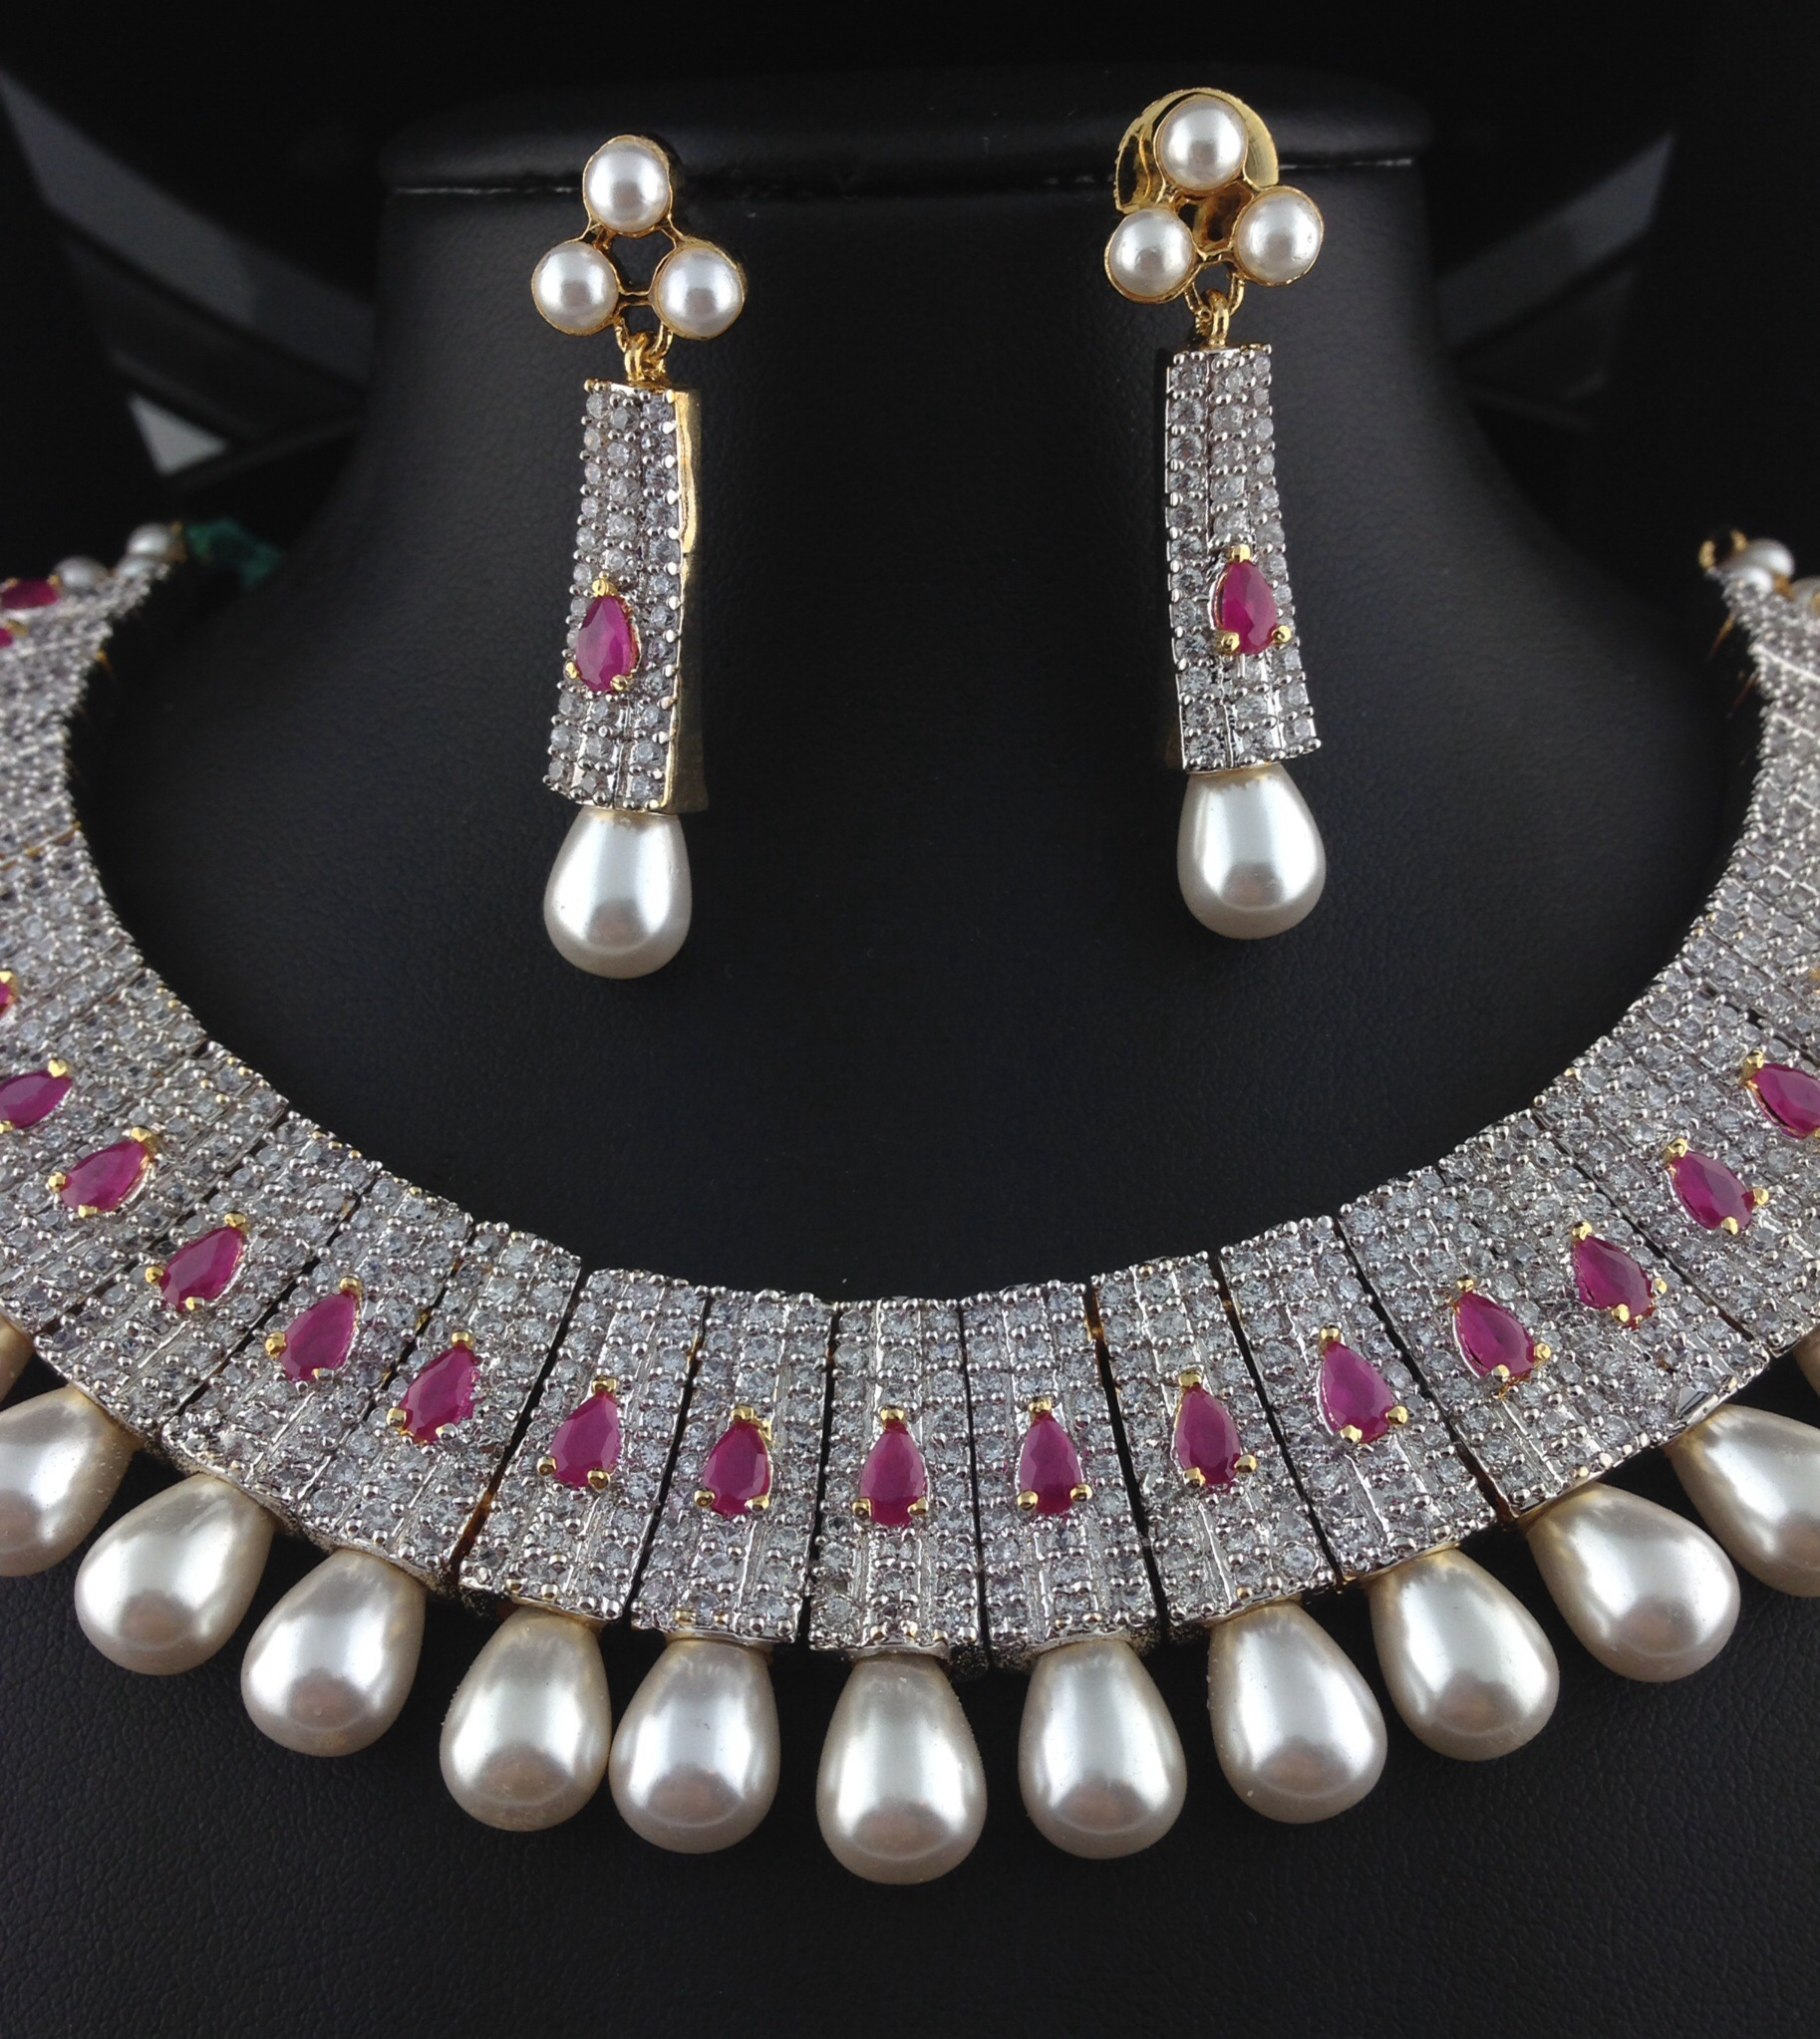 Stunning American Diamond CZ Bridal Set With Rubies and Pearls